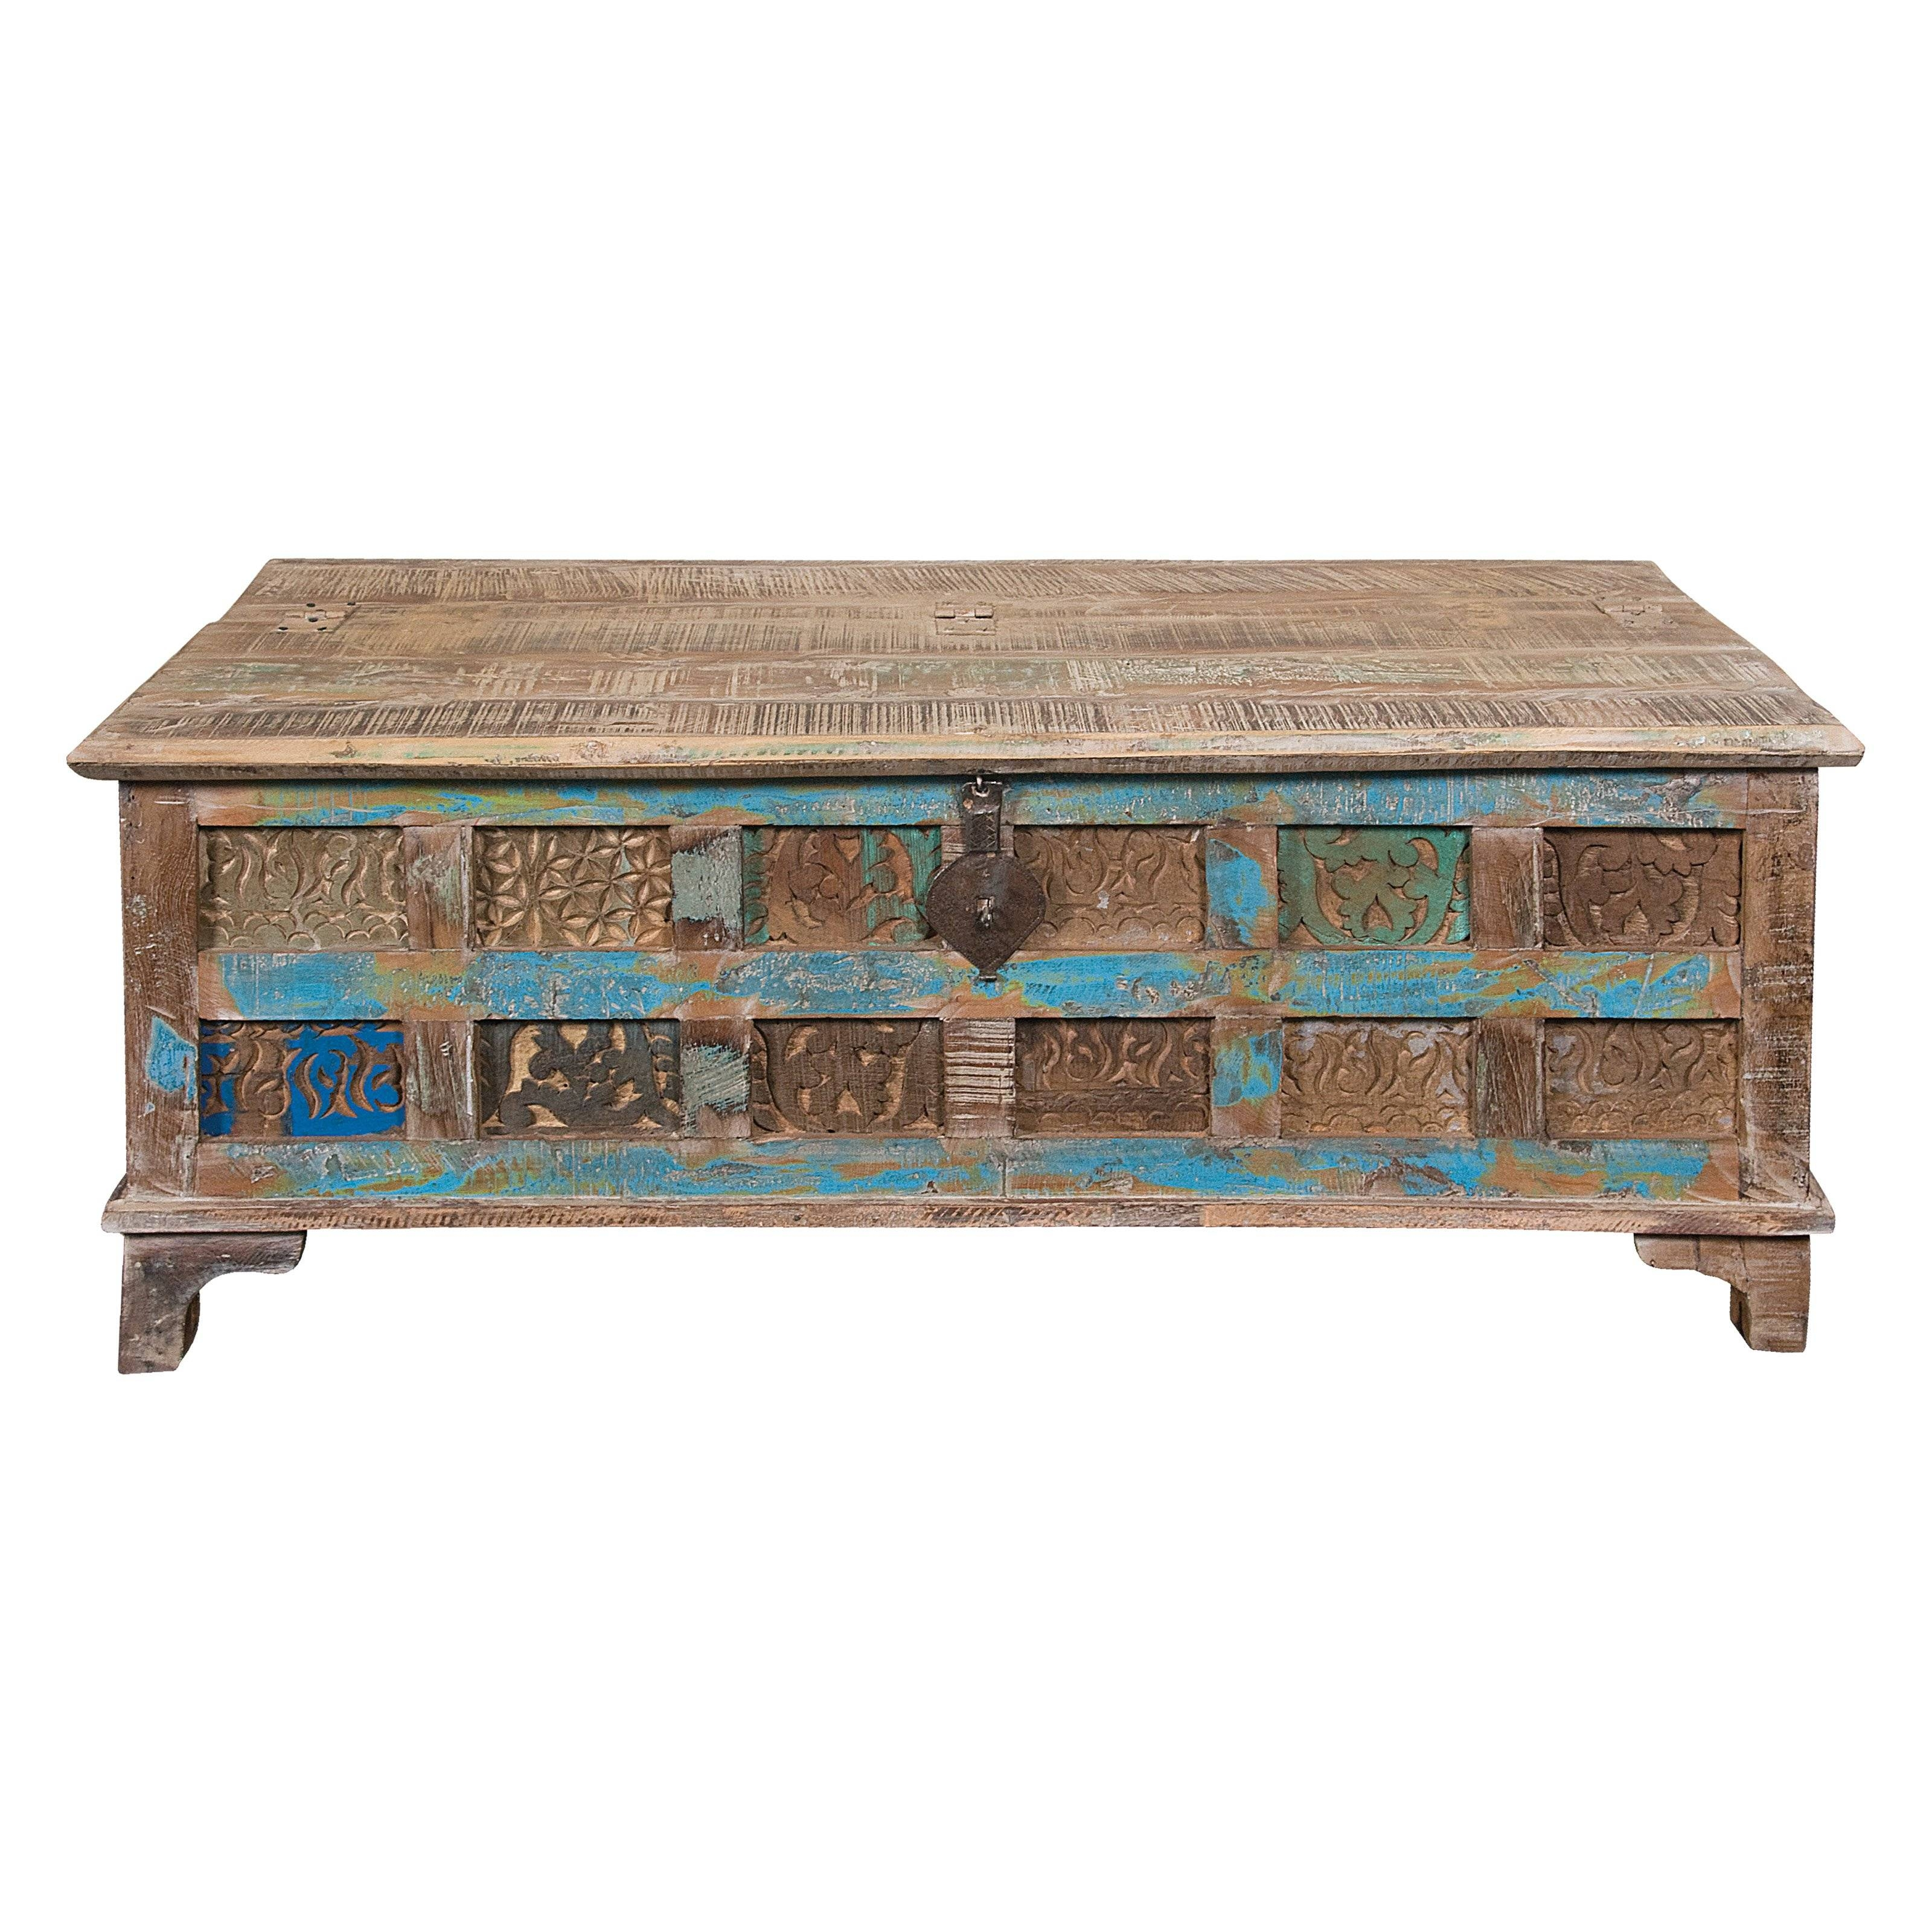 Antique Rustic Accent Coffee Table Design | Lanierhome Regarding Antique Rustic Coffee Tables (View 21 of 30)